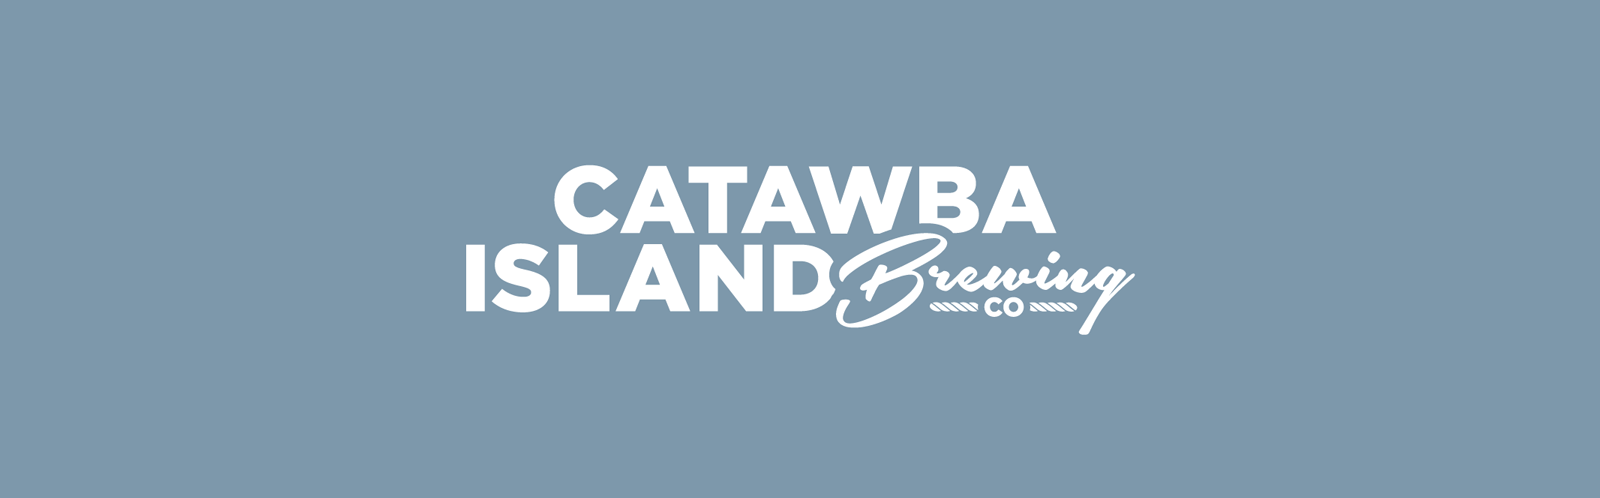 catawba-island-brewing-co-name.png